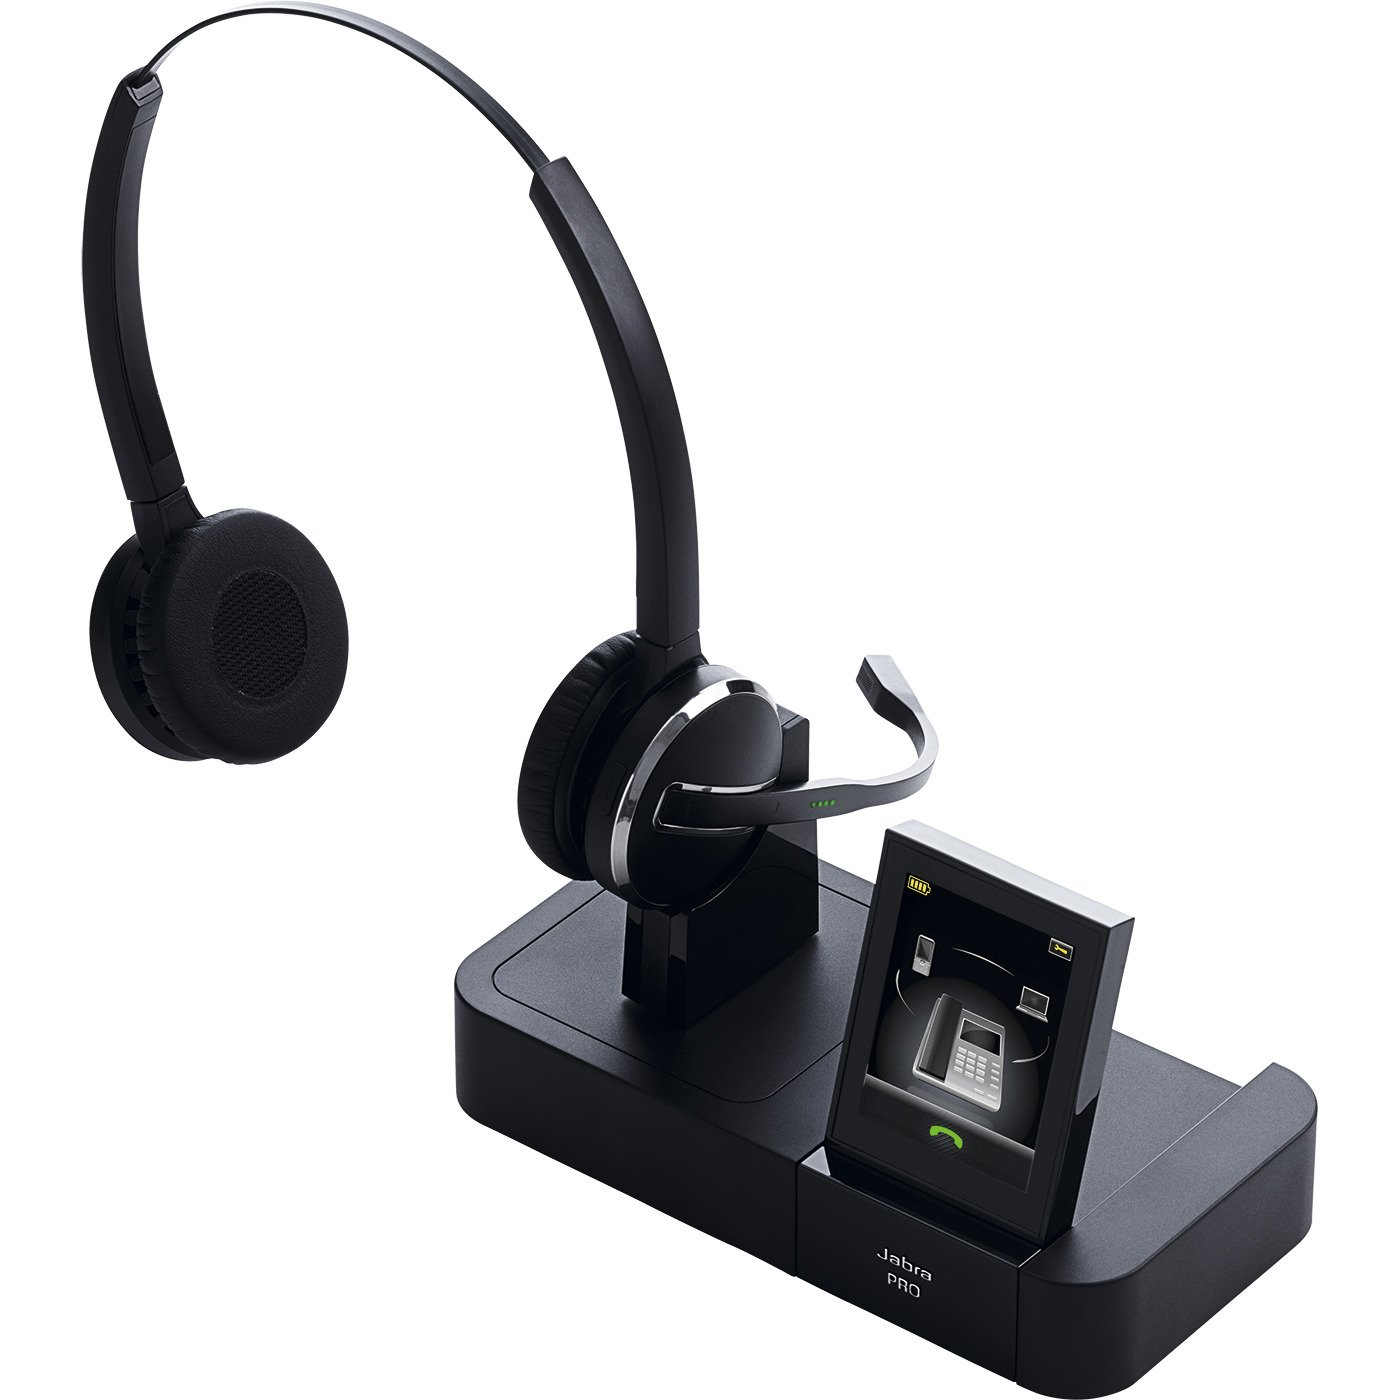 Jabra PRO 9465 Duo Wireless Headset with Touchscreen for Deskphone, Softphone & Mobile Phone by Jabra (Image #1)